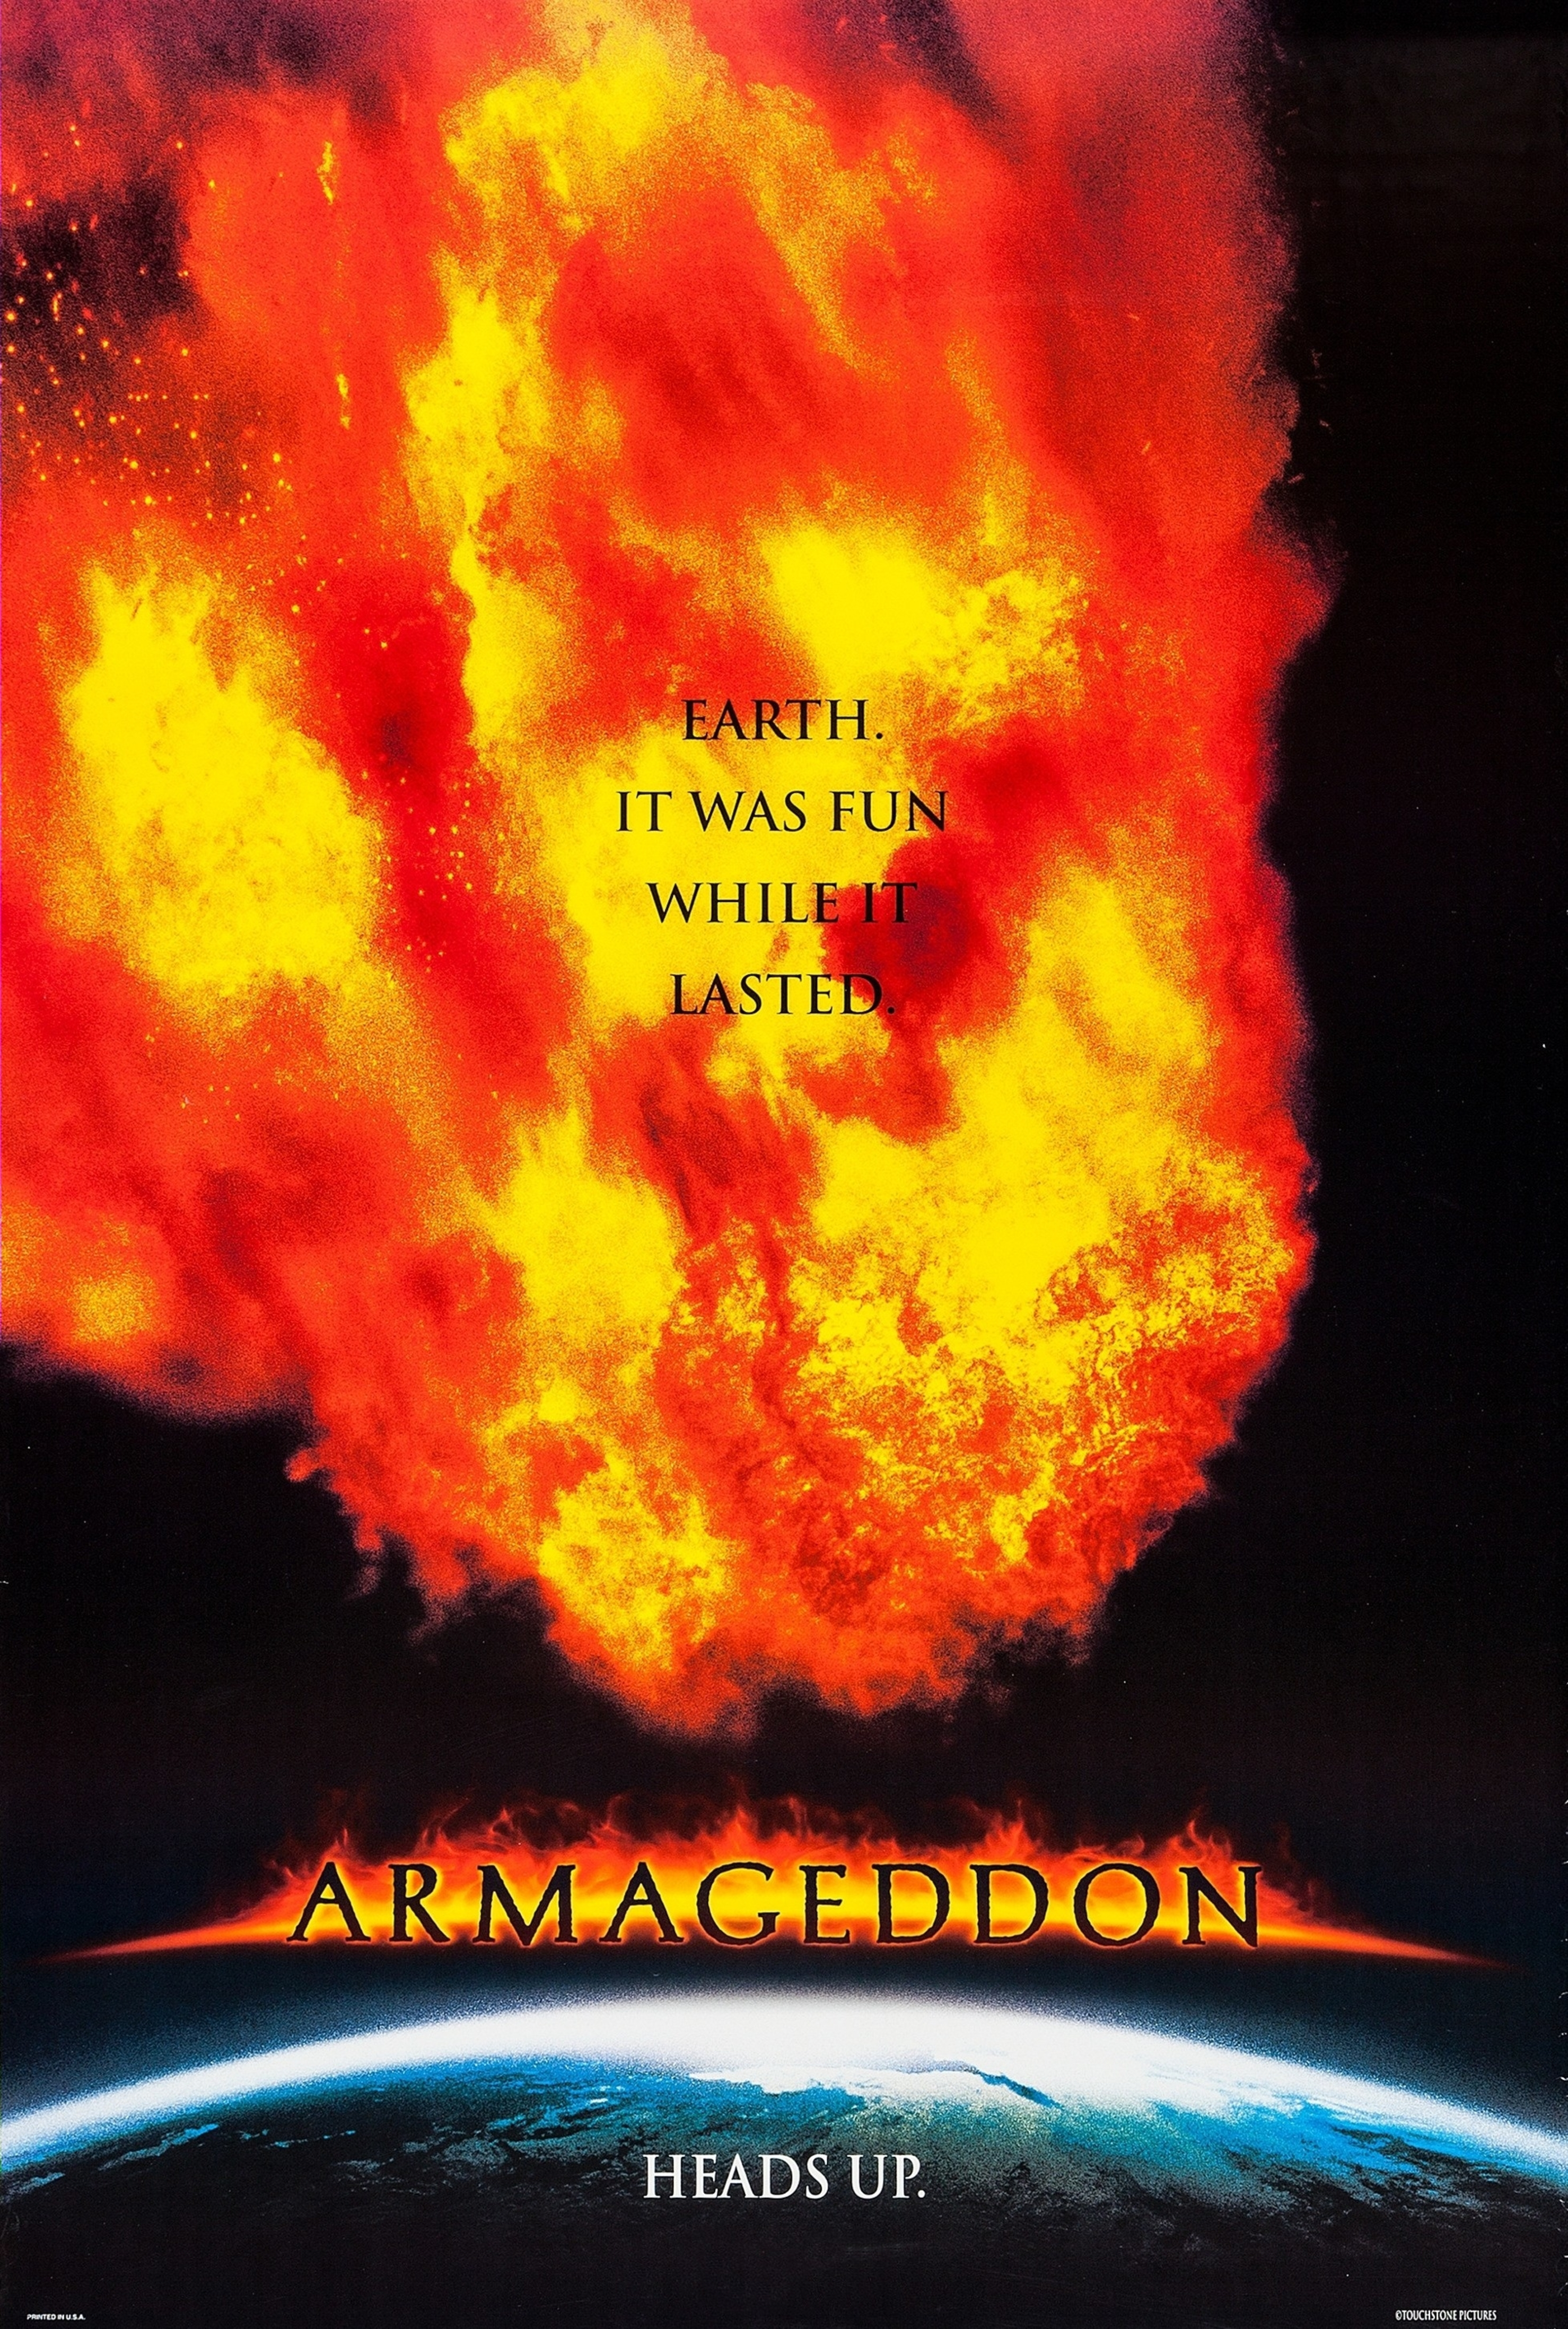 Armageddon 1998 2957 4392 With Images Armageddon Movie